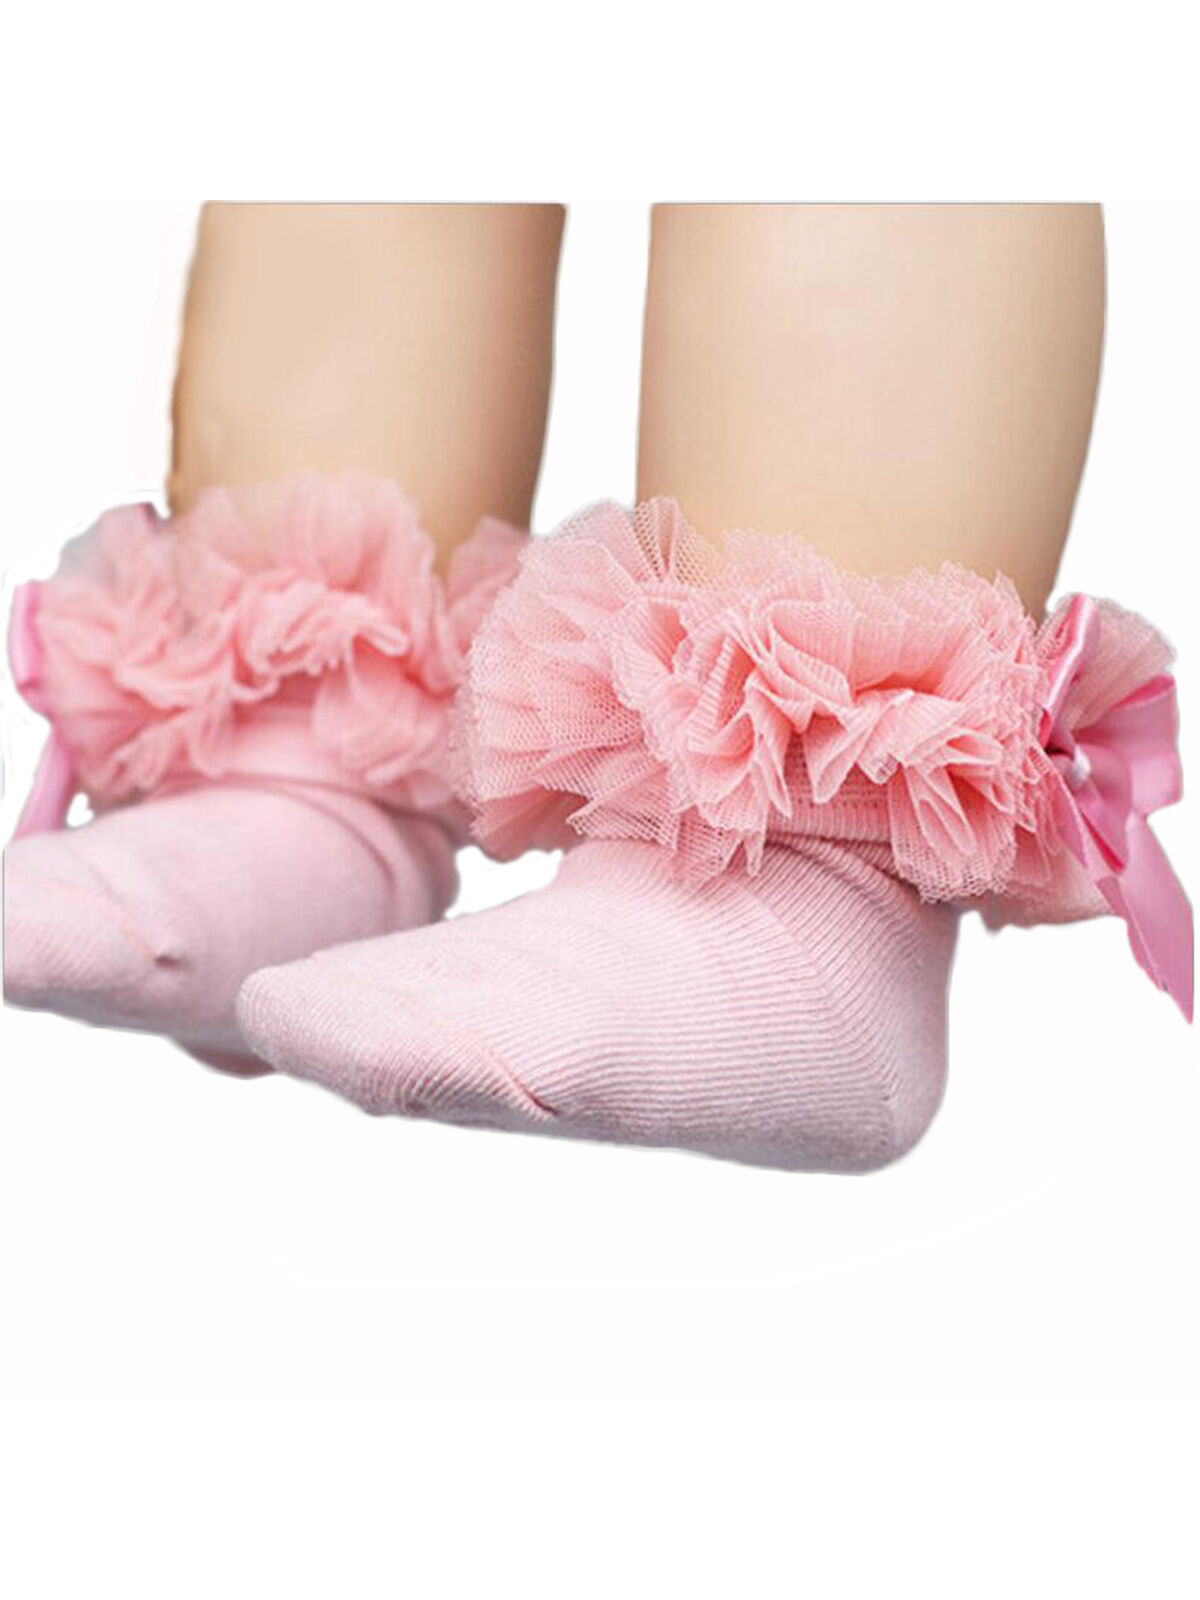 White Girls Lace Frilly Socks Multi//Pink LOL Ribbon Trim with Bows Size 9-12